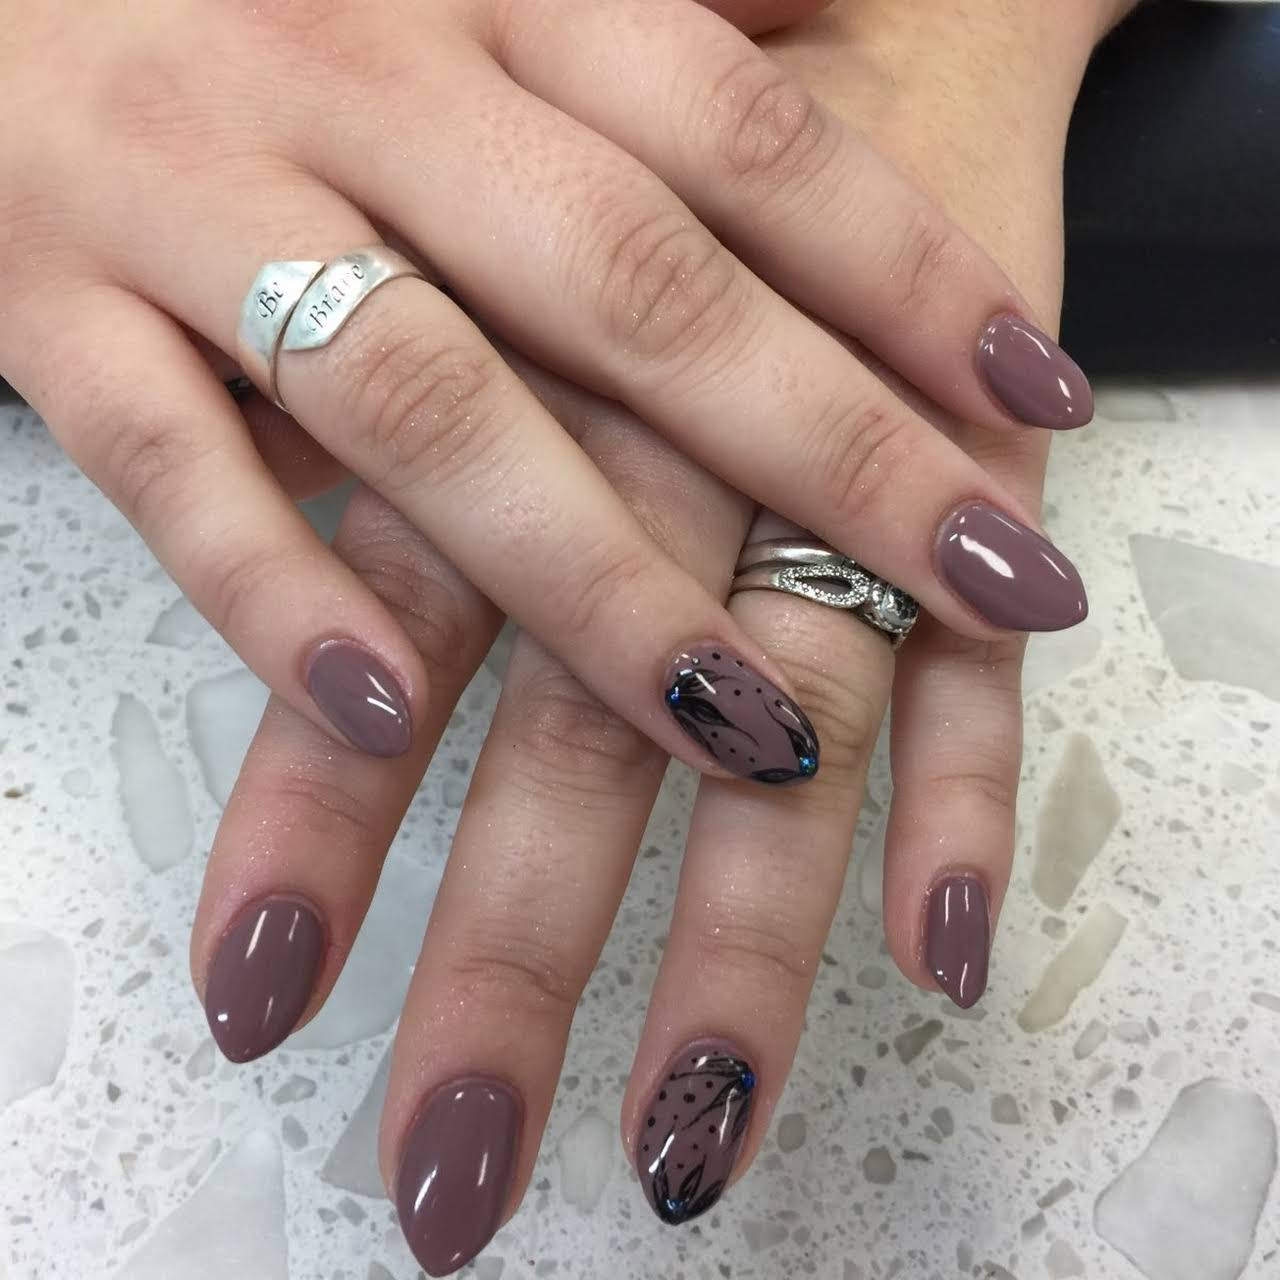 Nail Salons In Wilmington Nc - Best Nail 2018